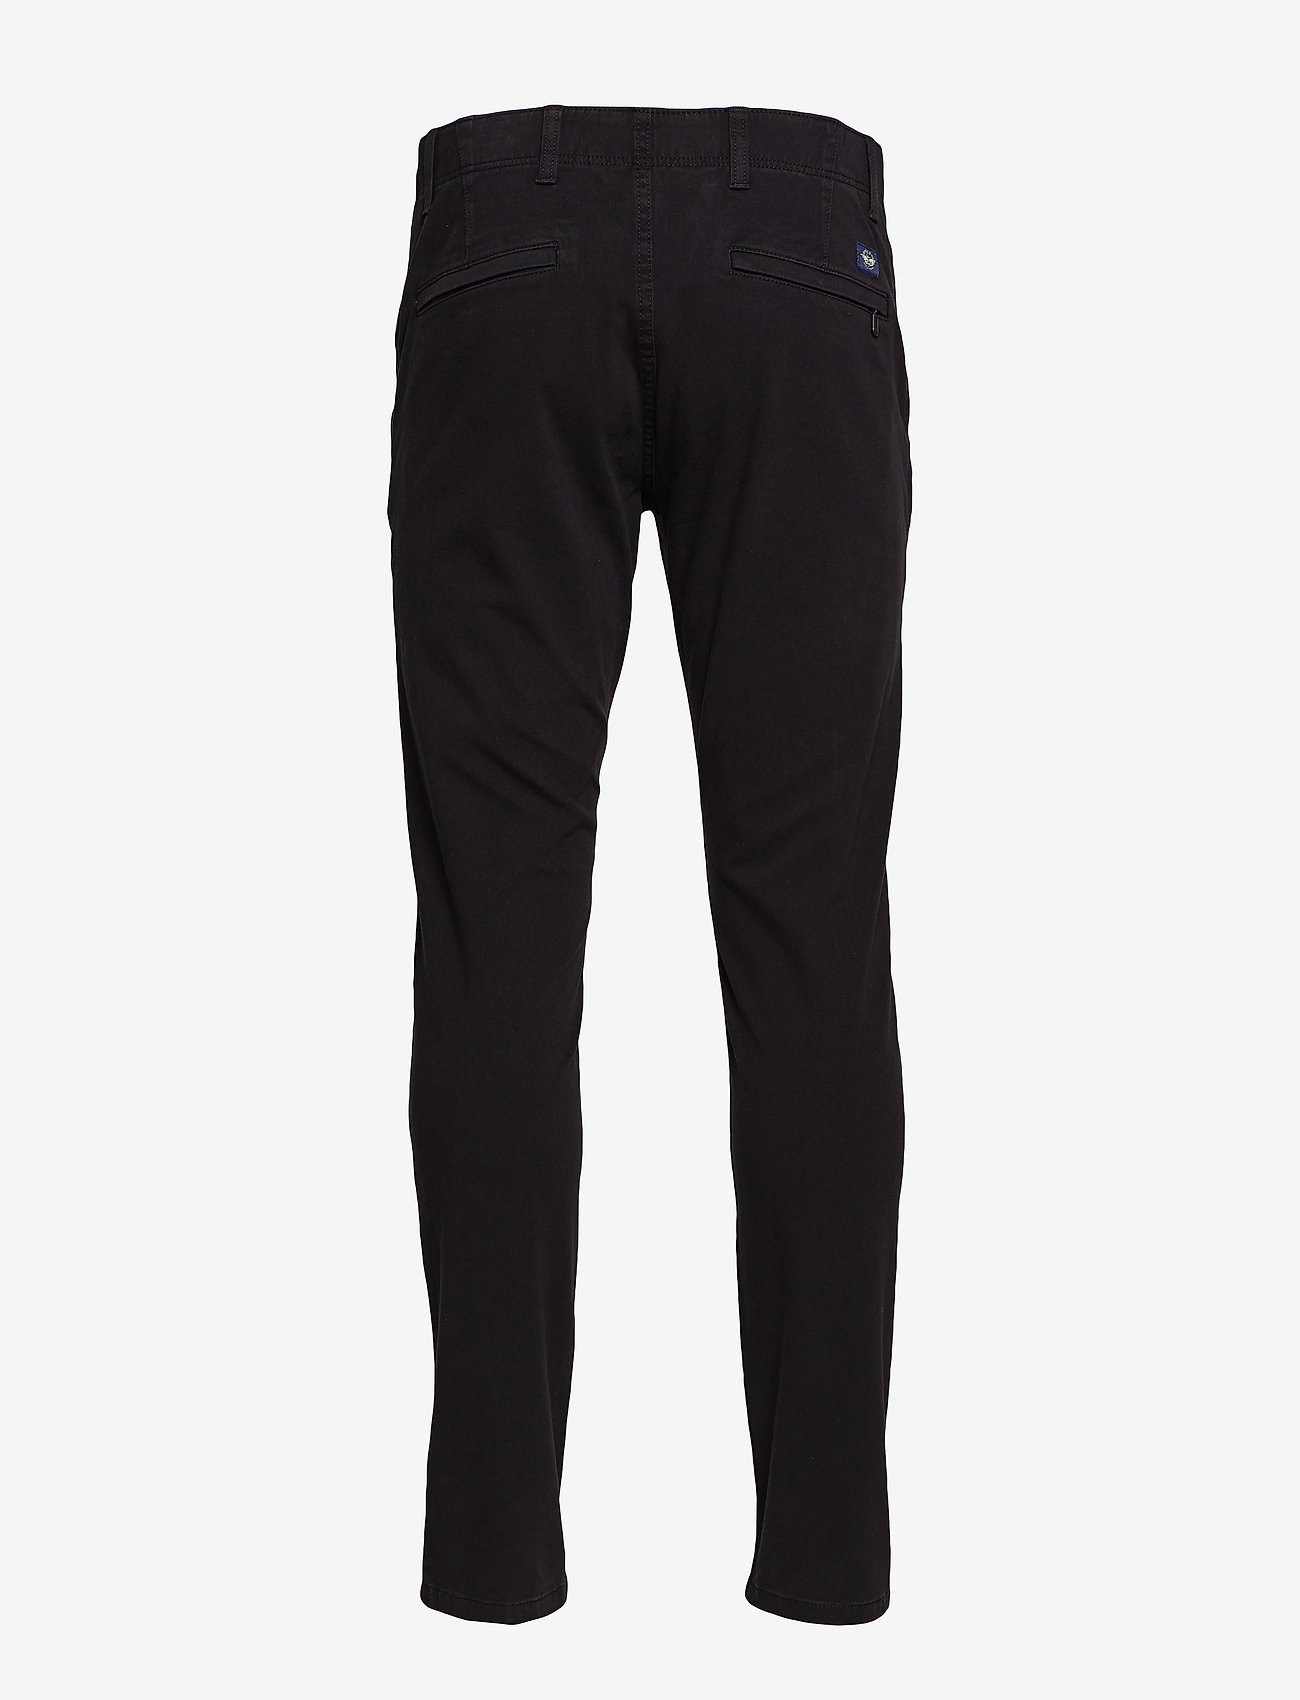 Dockers - ALPHA KHAKI 360 SKINNY BLACK - chinosy - blacks - 1